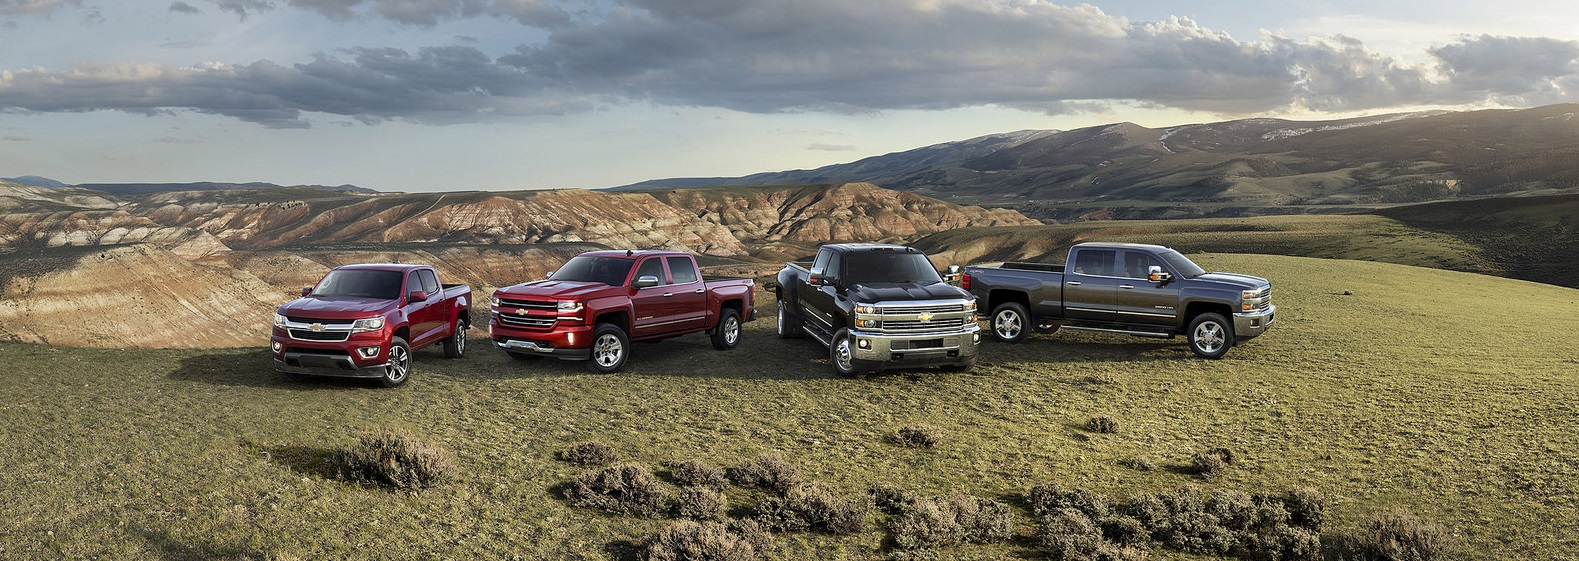 2016 Chevrolet Truck Lineup at Carter Chevrolet in Okarche OK